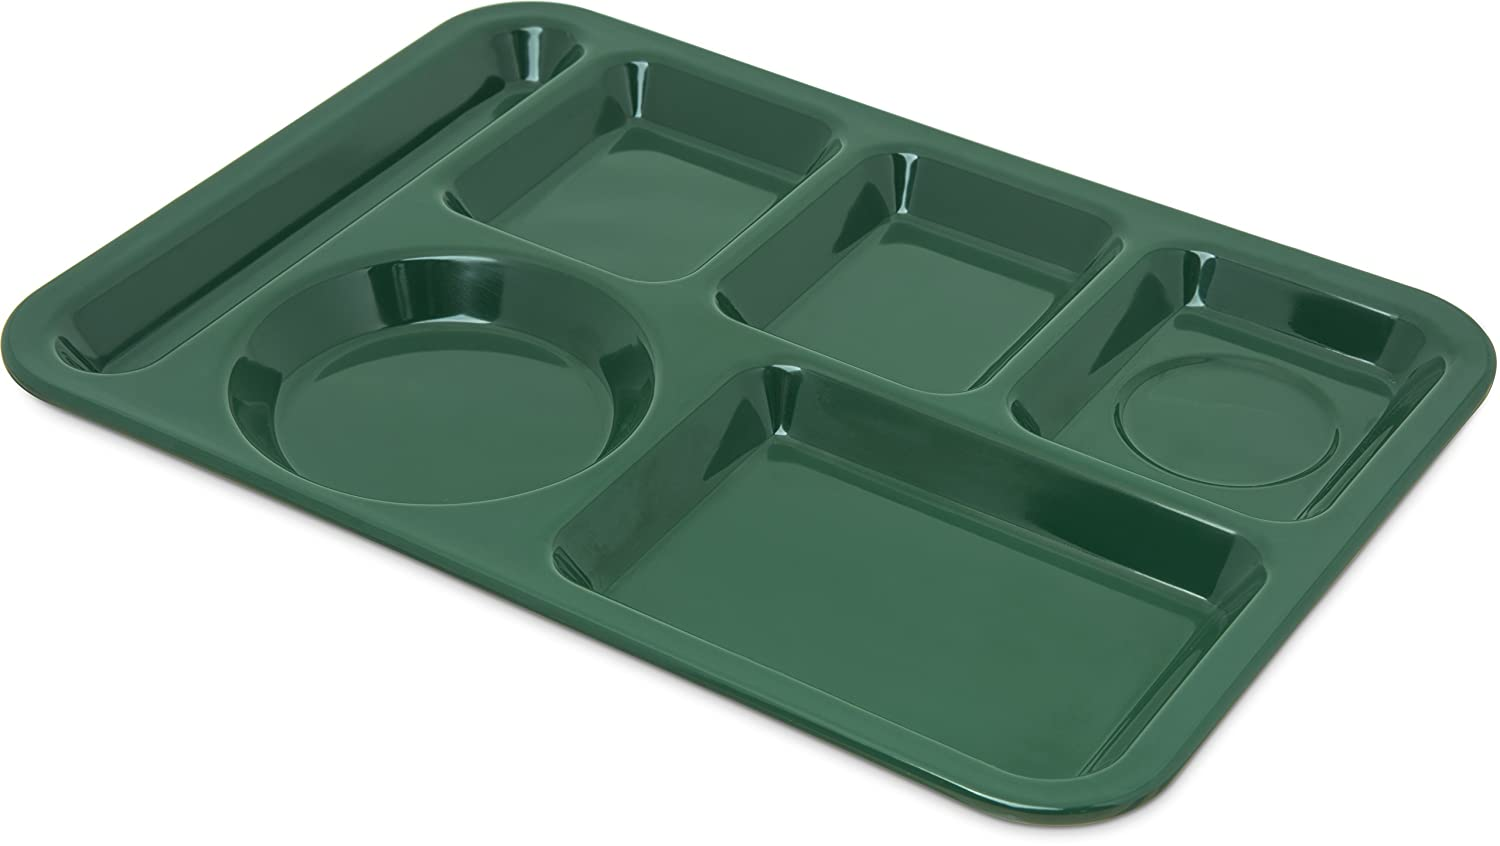 Carlisle 4398008 Left-Hand Heavy Weight 6-Compartment Cafeteria/Fast Food Tray, 10